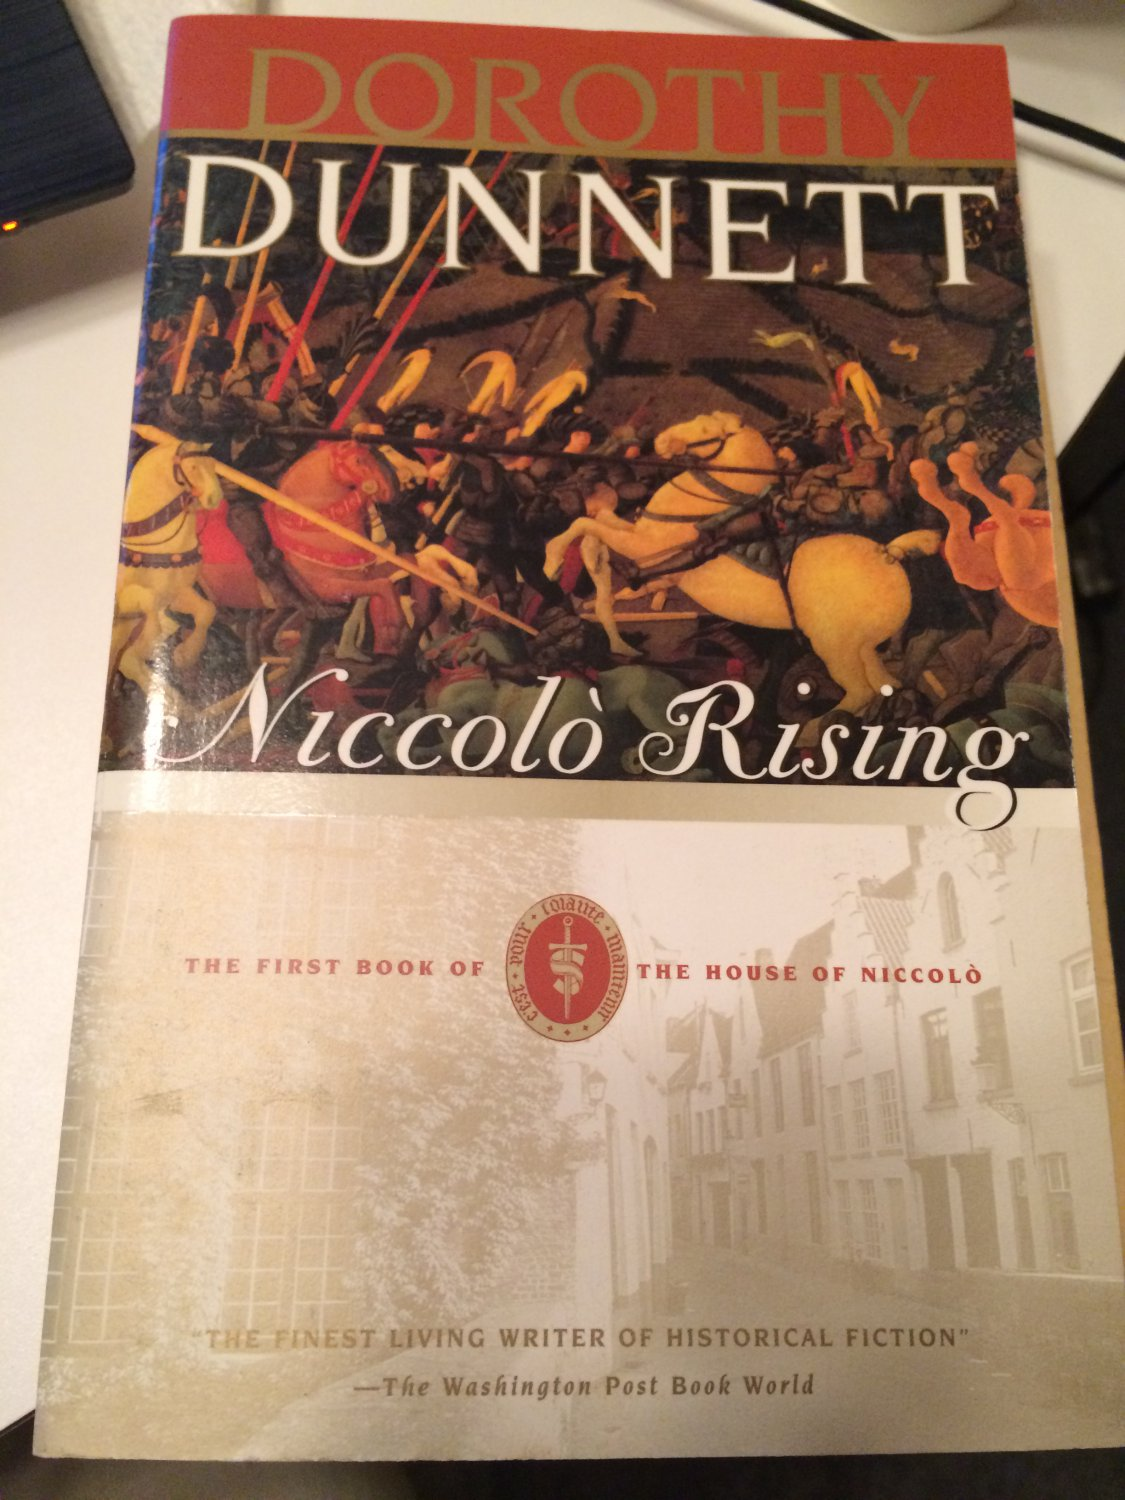 Niccolò Rising: The First Book [Paperback] [Mar 30, 1999] Dunnett, Dorothy